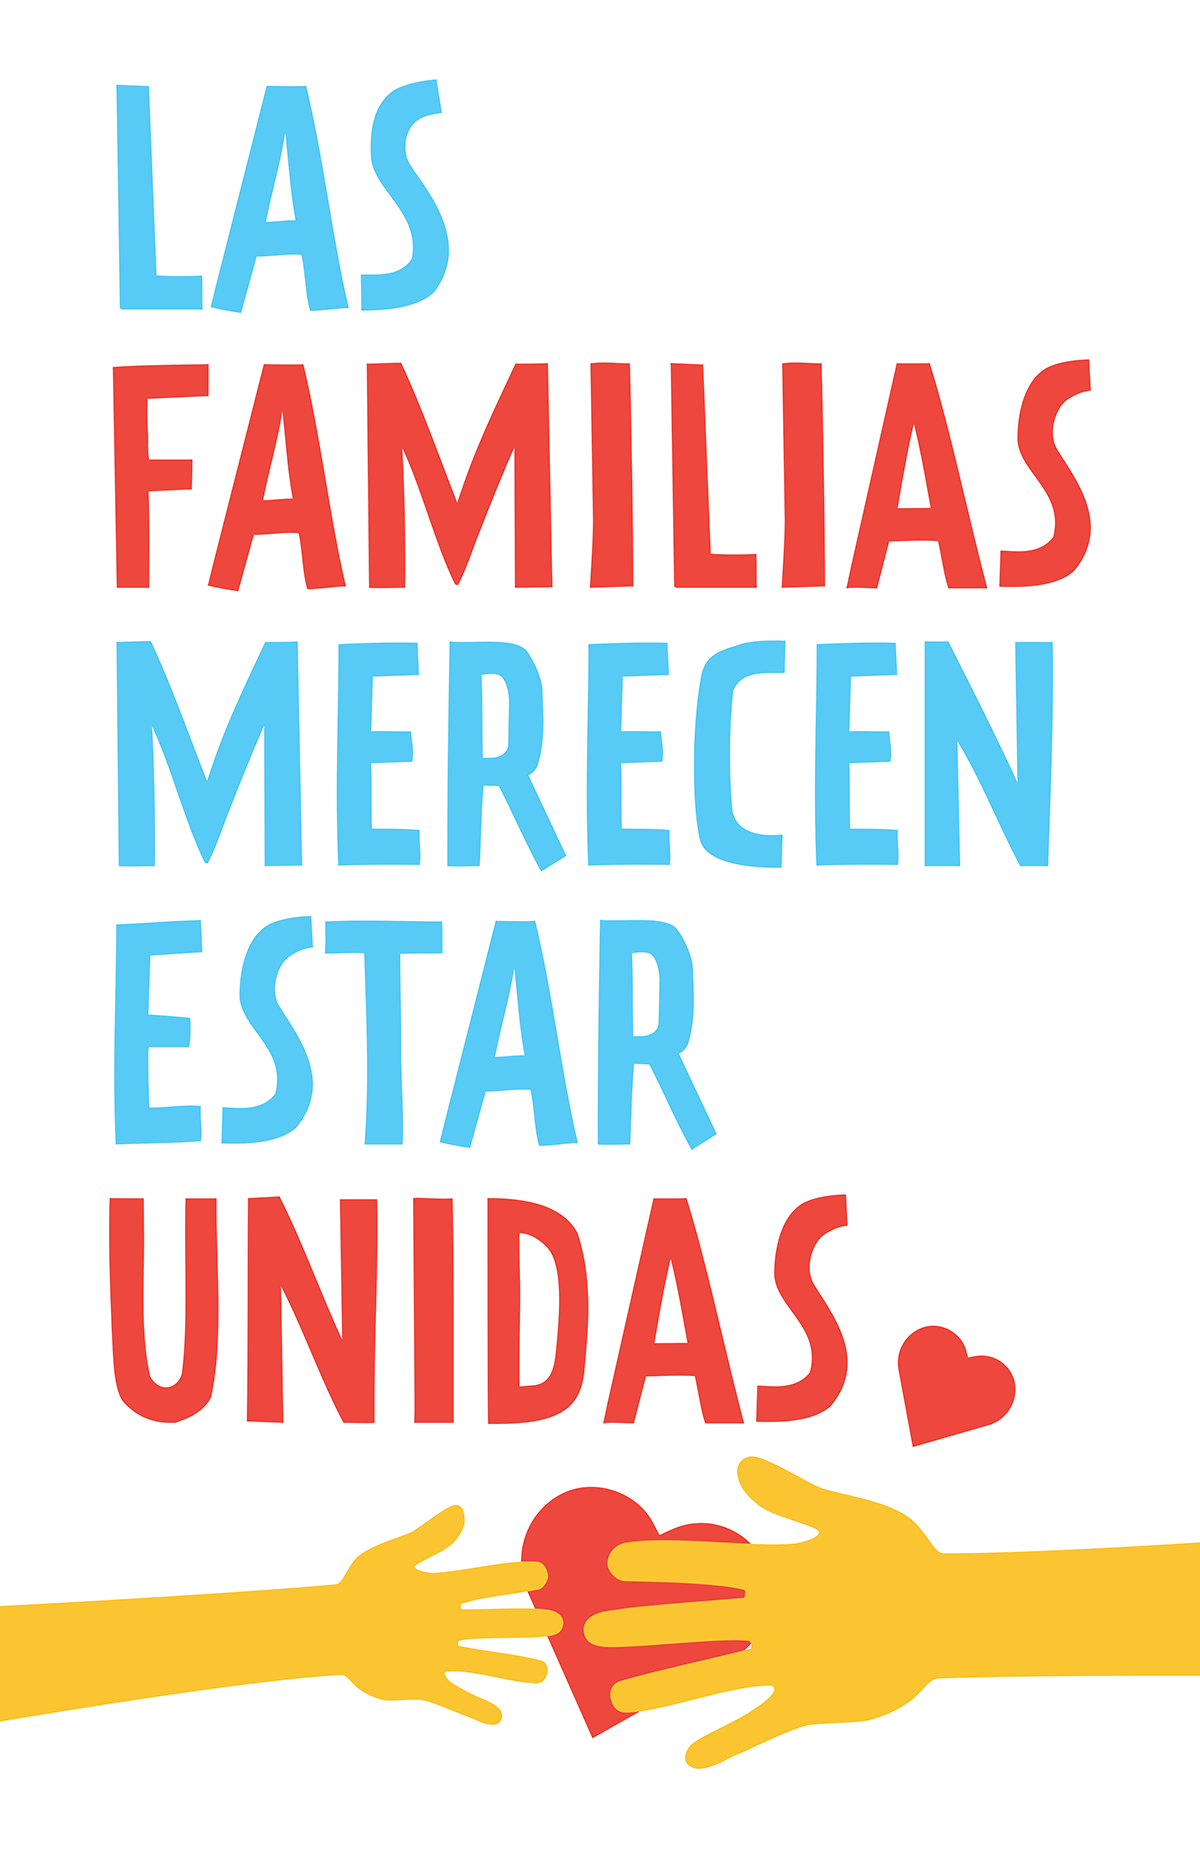 """Las Familias Merecen Estar Unidas"" type above an adult hand reaching out for a child hand over a heart."